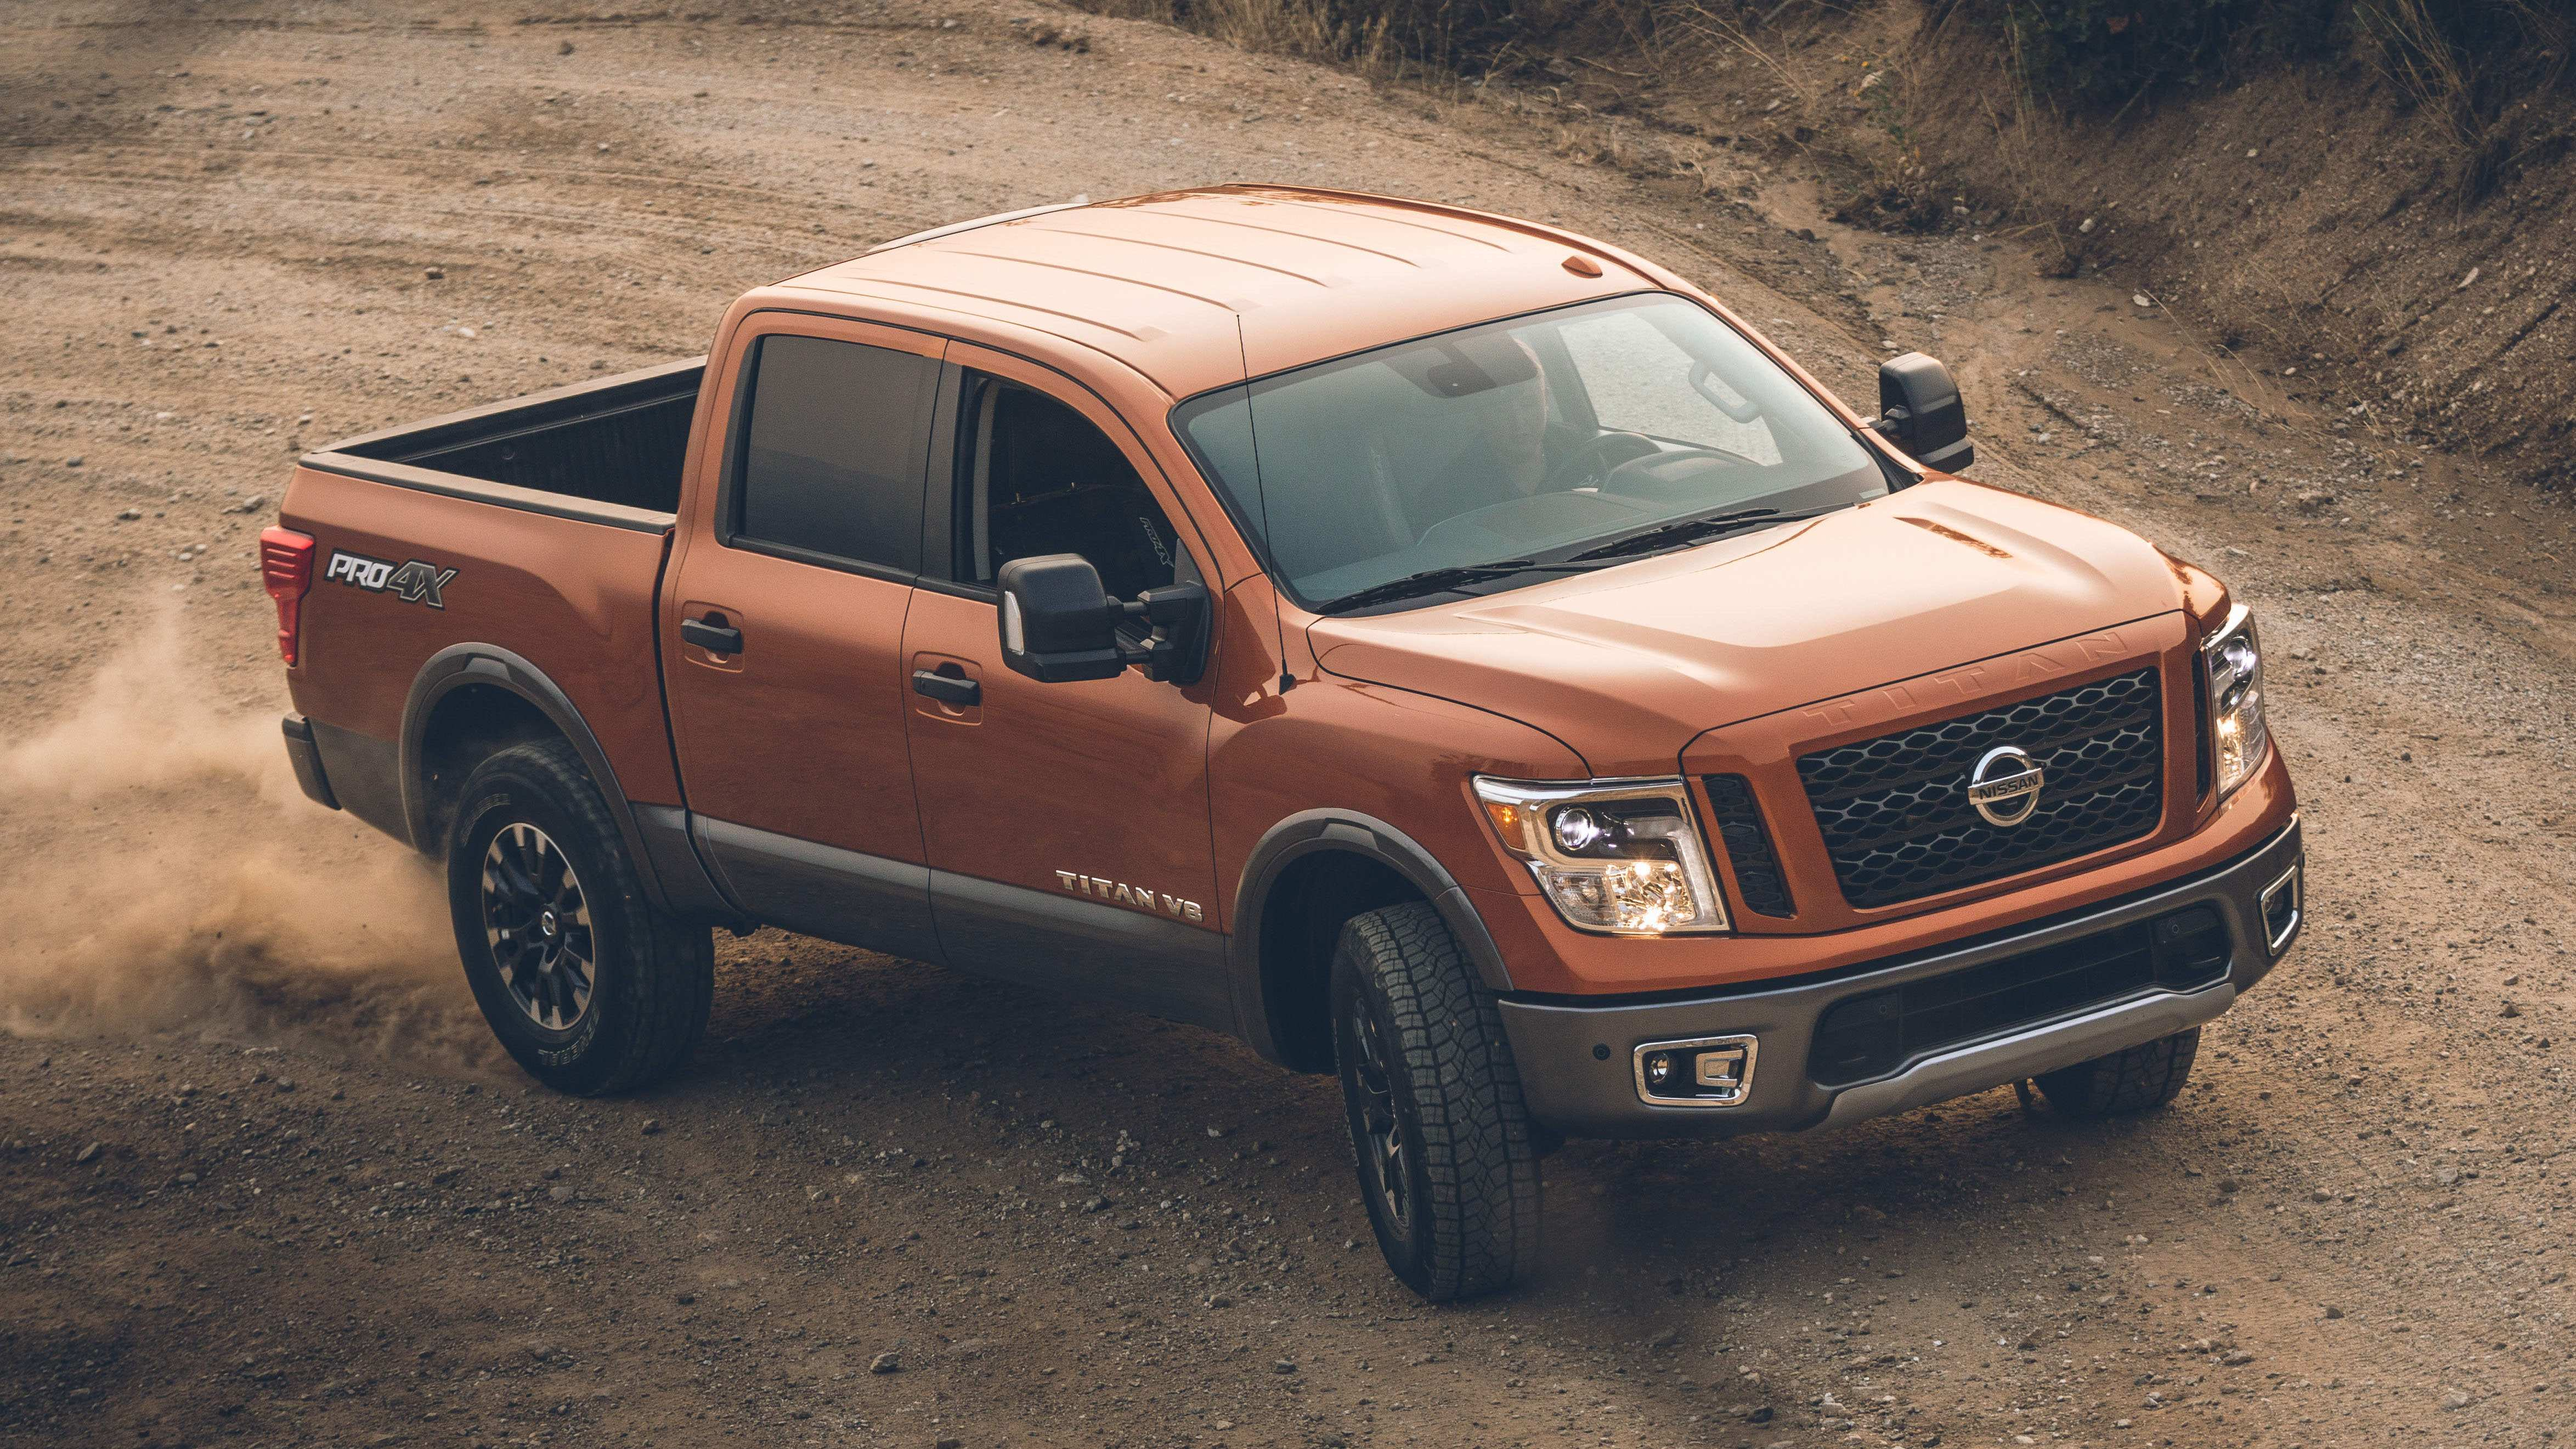 36 Great 2019 Nissan Titan Interior 2 Performance and New Engine by 2019 Nissan Titan Interior 2